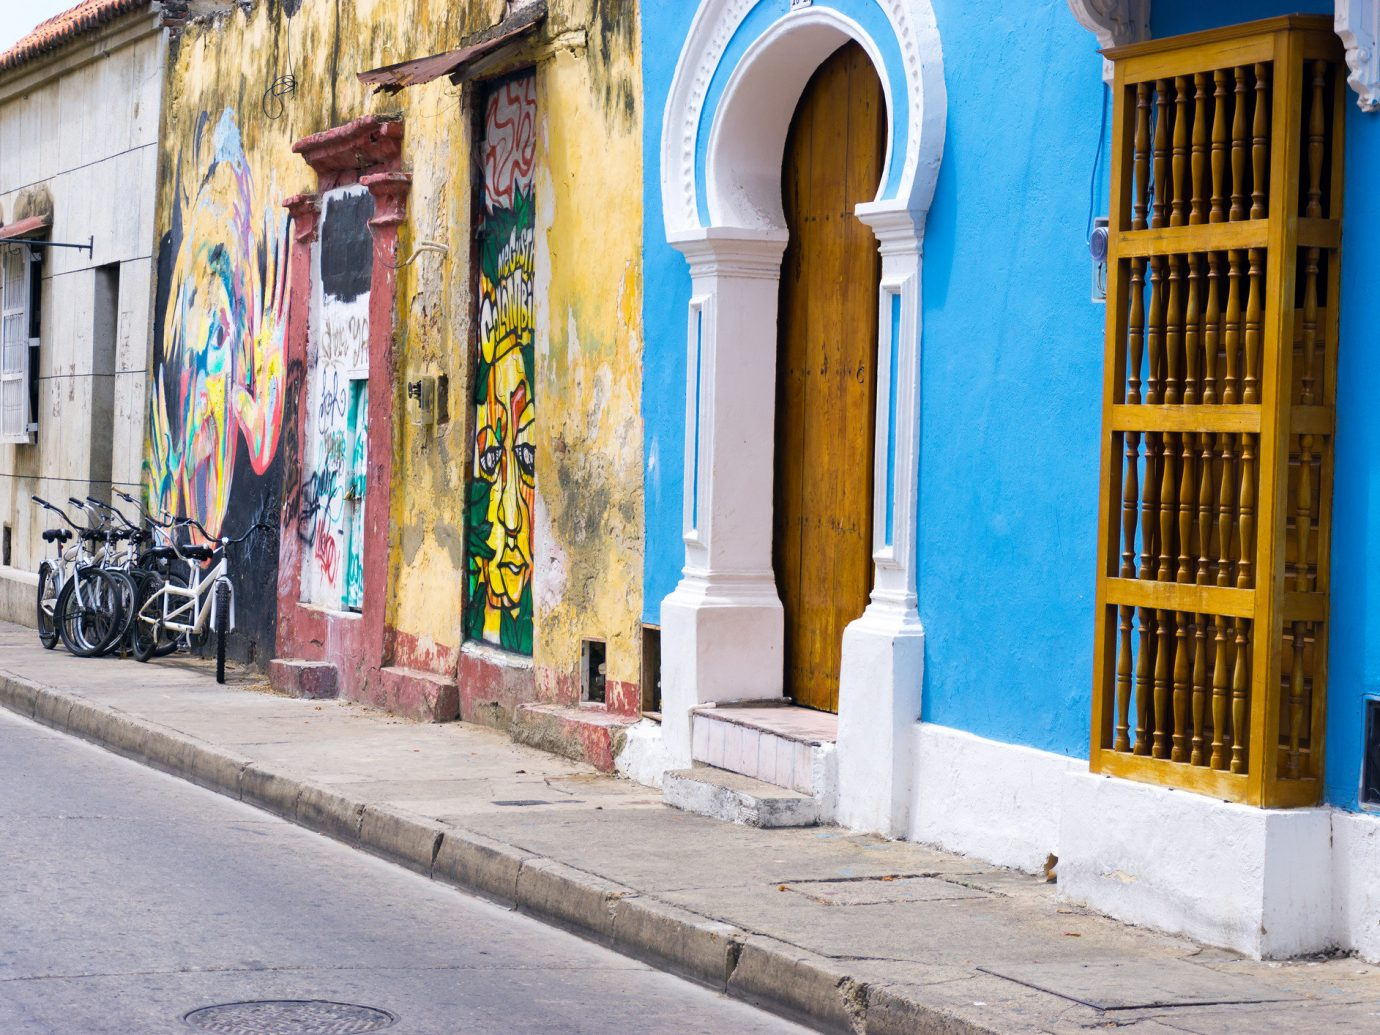 Offbeat building outdoor color road blue street Town urban area neighbourhood way City wall Architecture sidewalk scene facade art alley infrastructure ancient history past scooter curb